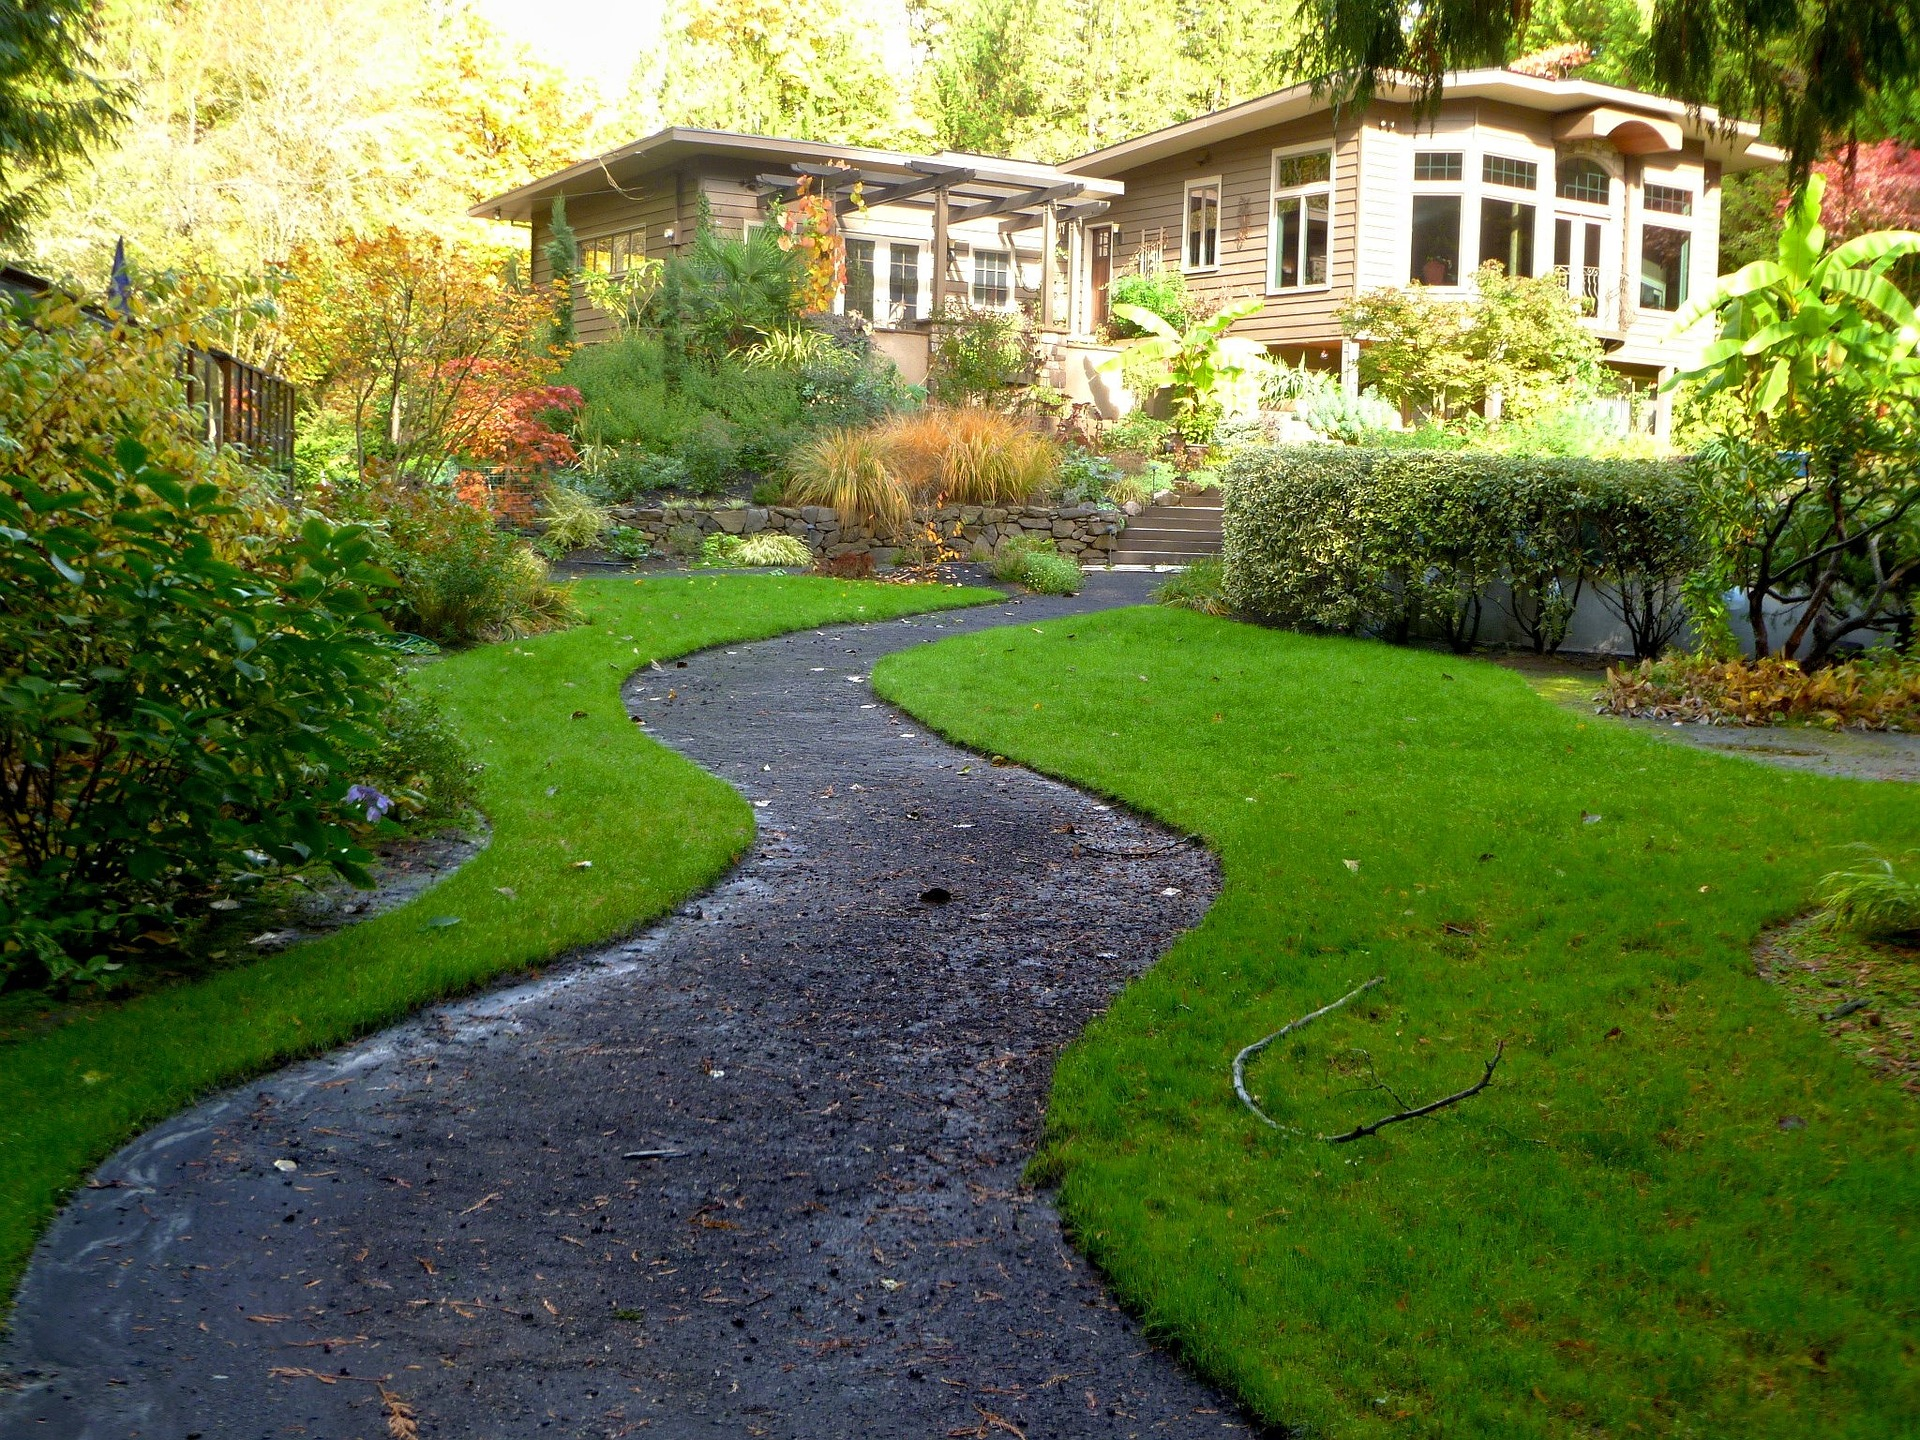 Lawn maintenance by C & C Property Maintenance in Keene NH